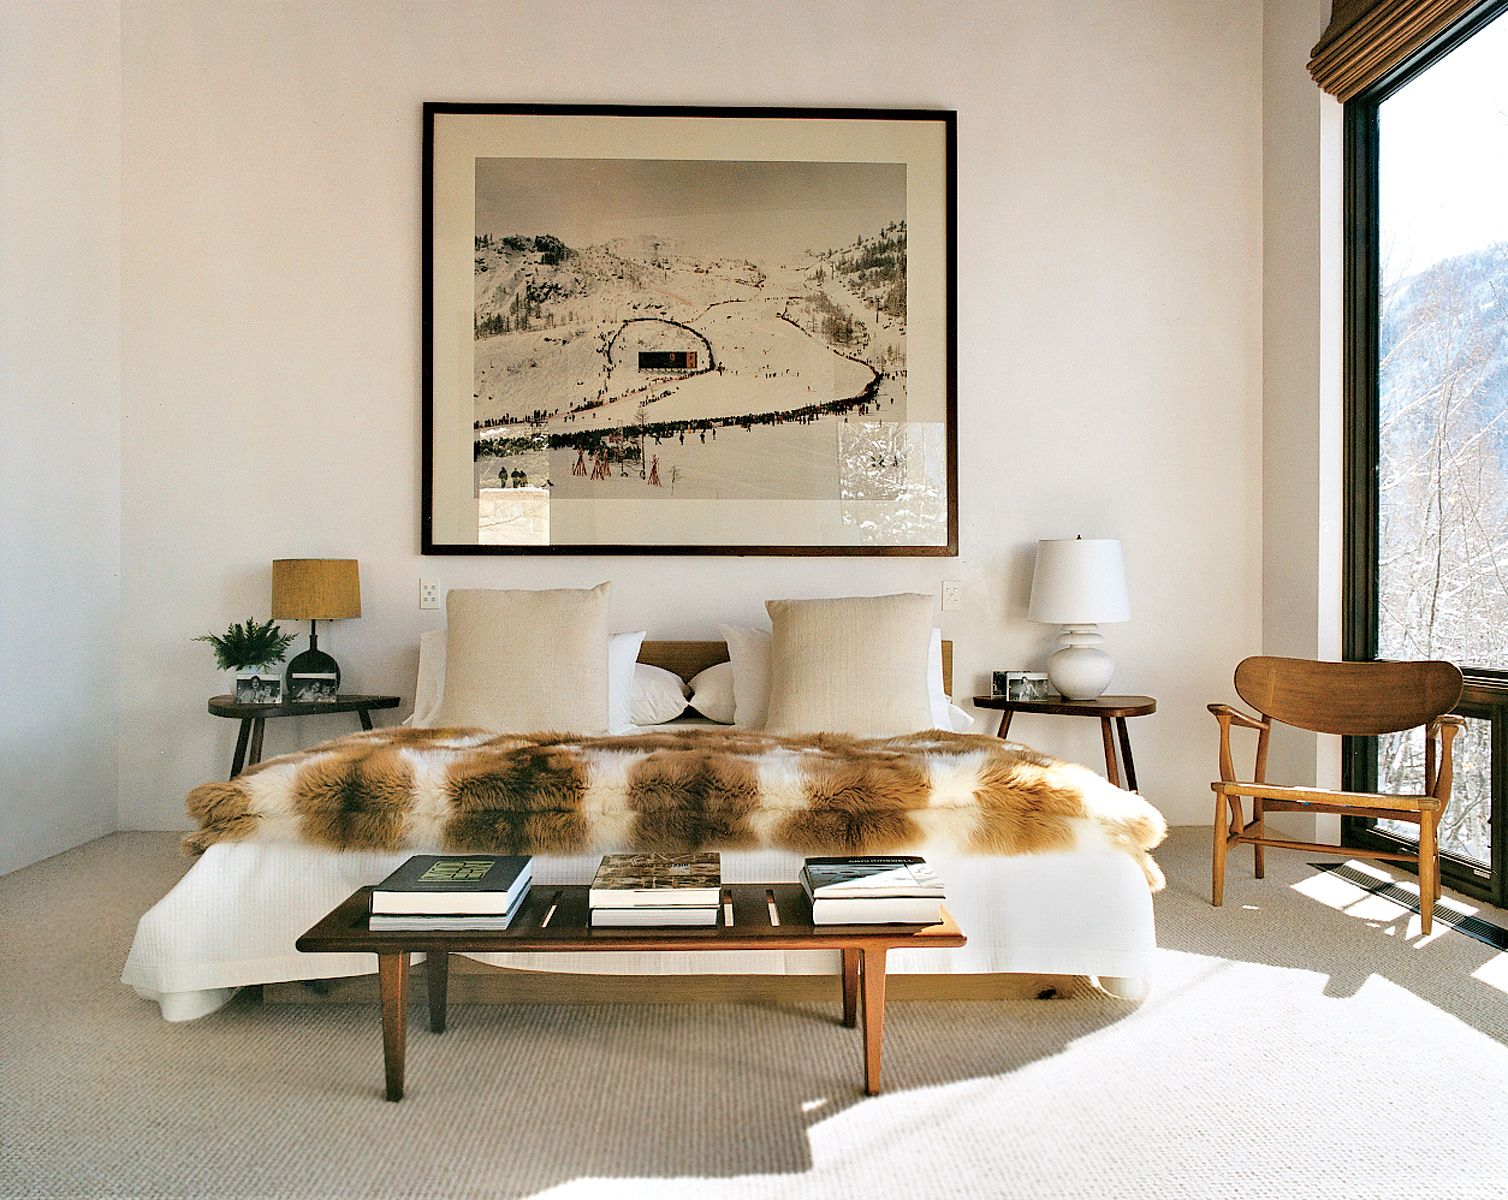 Aerin lauders aspen home photo by francois halard for vogue aerin lauders aspen home photo by francois halard for vogue magazine the master bedroom geotapseo Choice Image